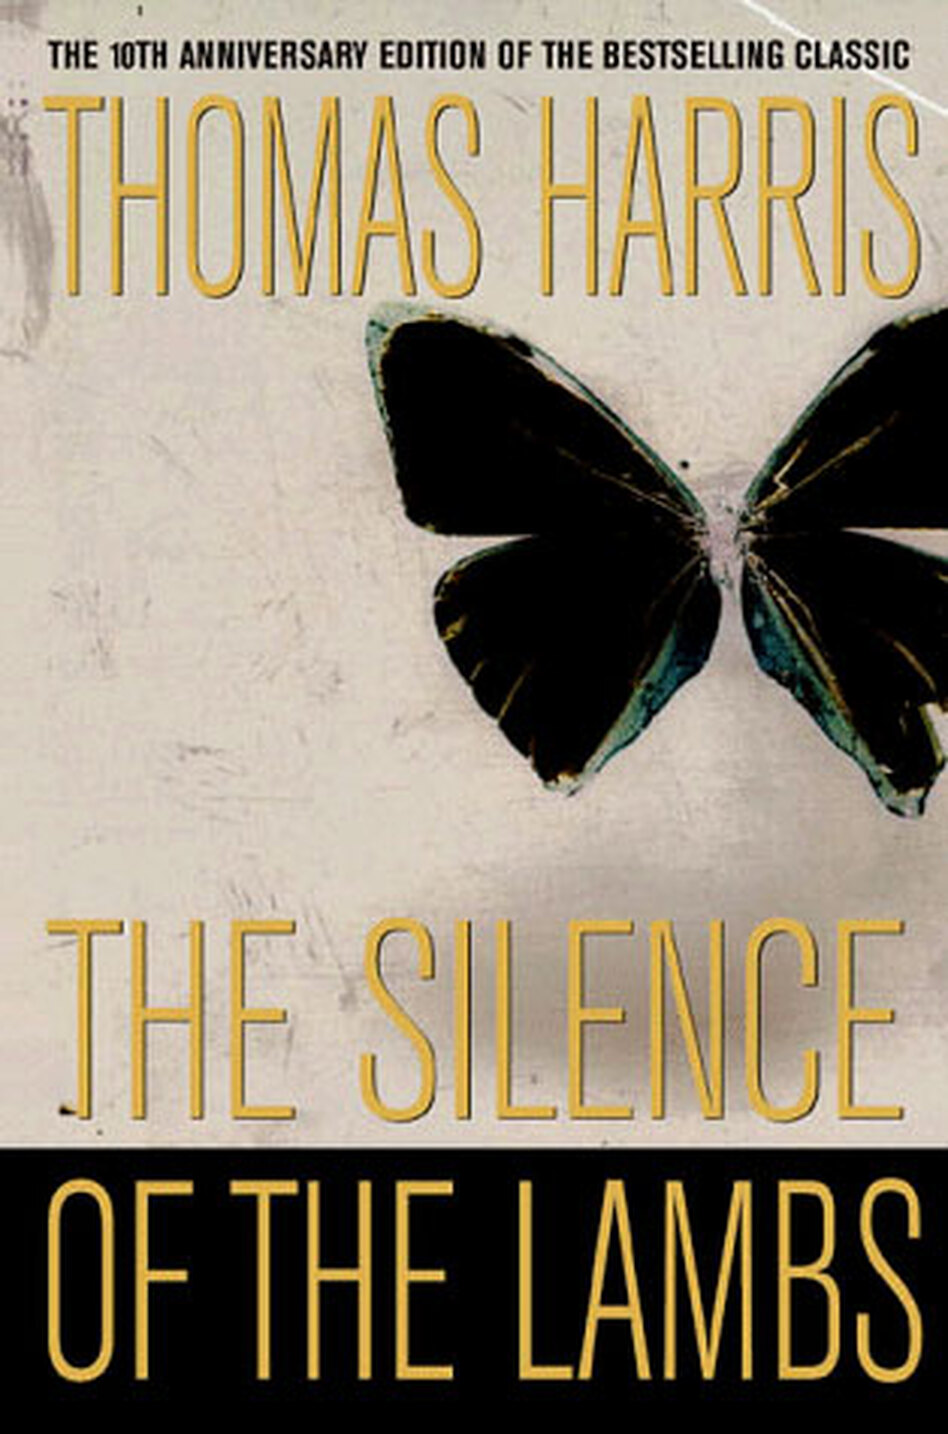 The Winner: The Silence Of The Lambs by Thomas Harris beat out two other serial killer books -- The Girl with the Dragon Tattoo by Stieg Larsson and Kiss the Girls by James Patterson -- for the No. 1 spot.